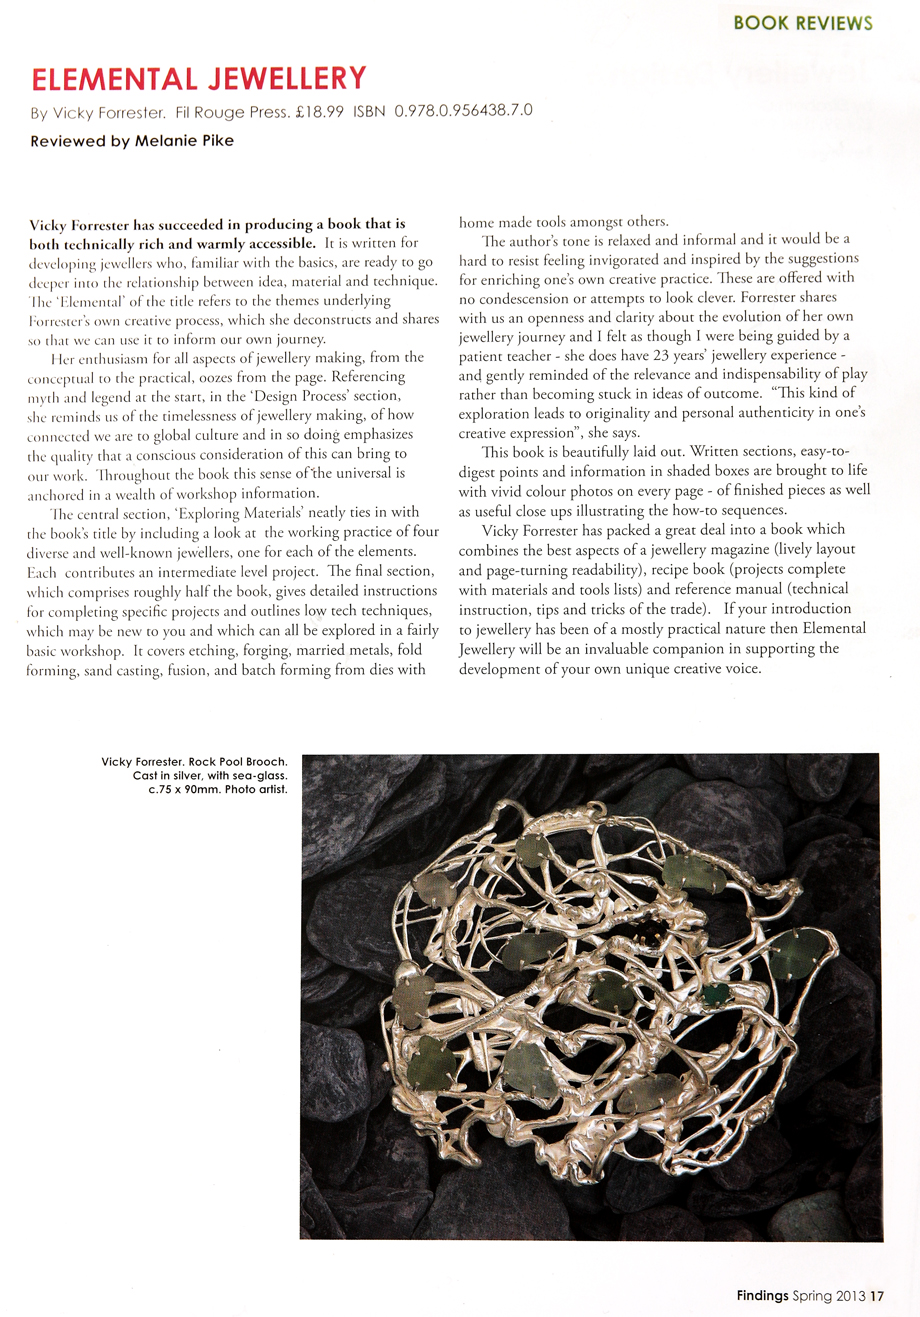 Read the full review of Elemental Jewellery